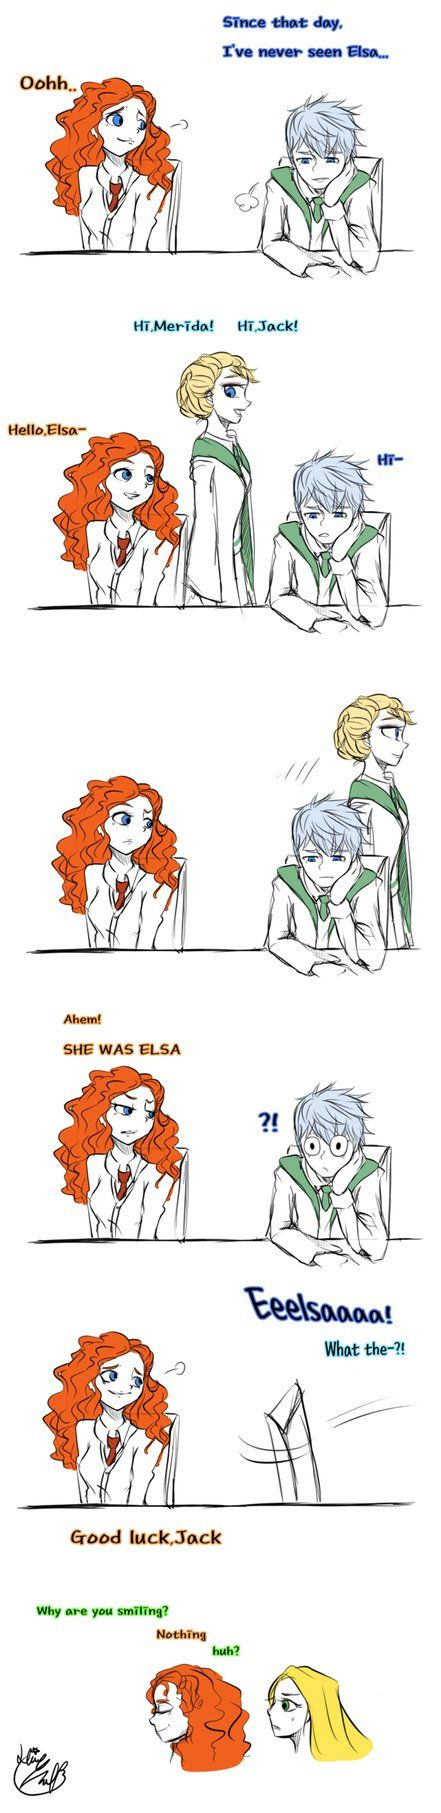 Good luck,buddy (doodles) by Lime-Hael on deviantART                 this is hermione and draco.  Or me and my friend